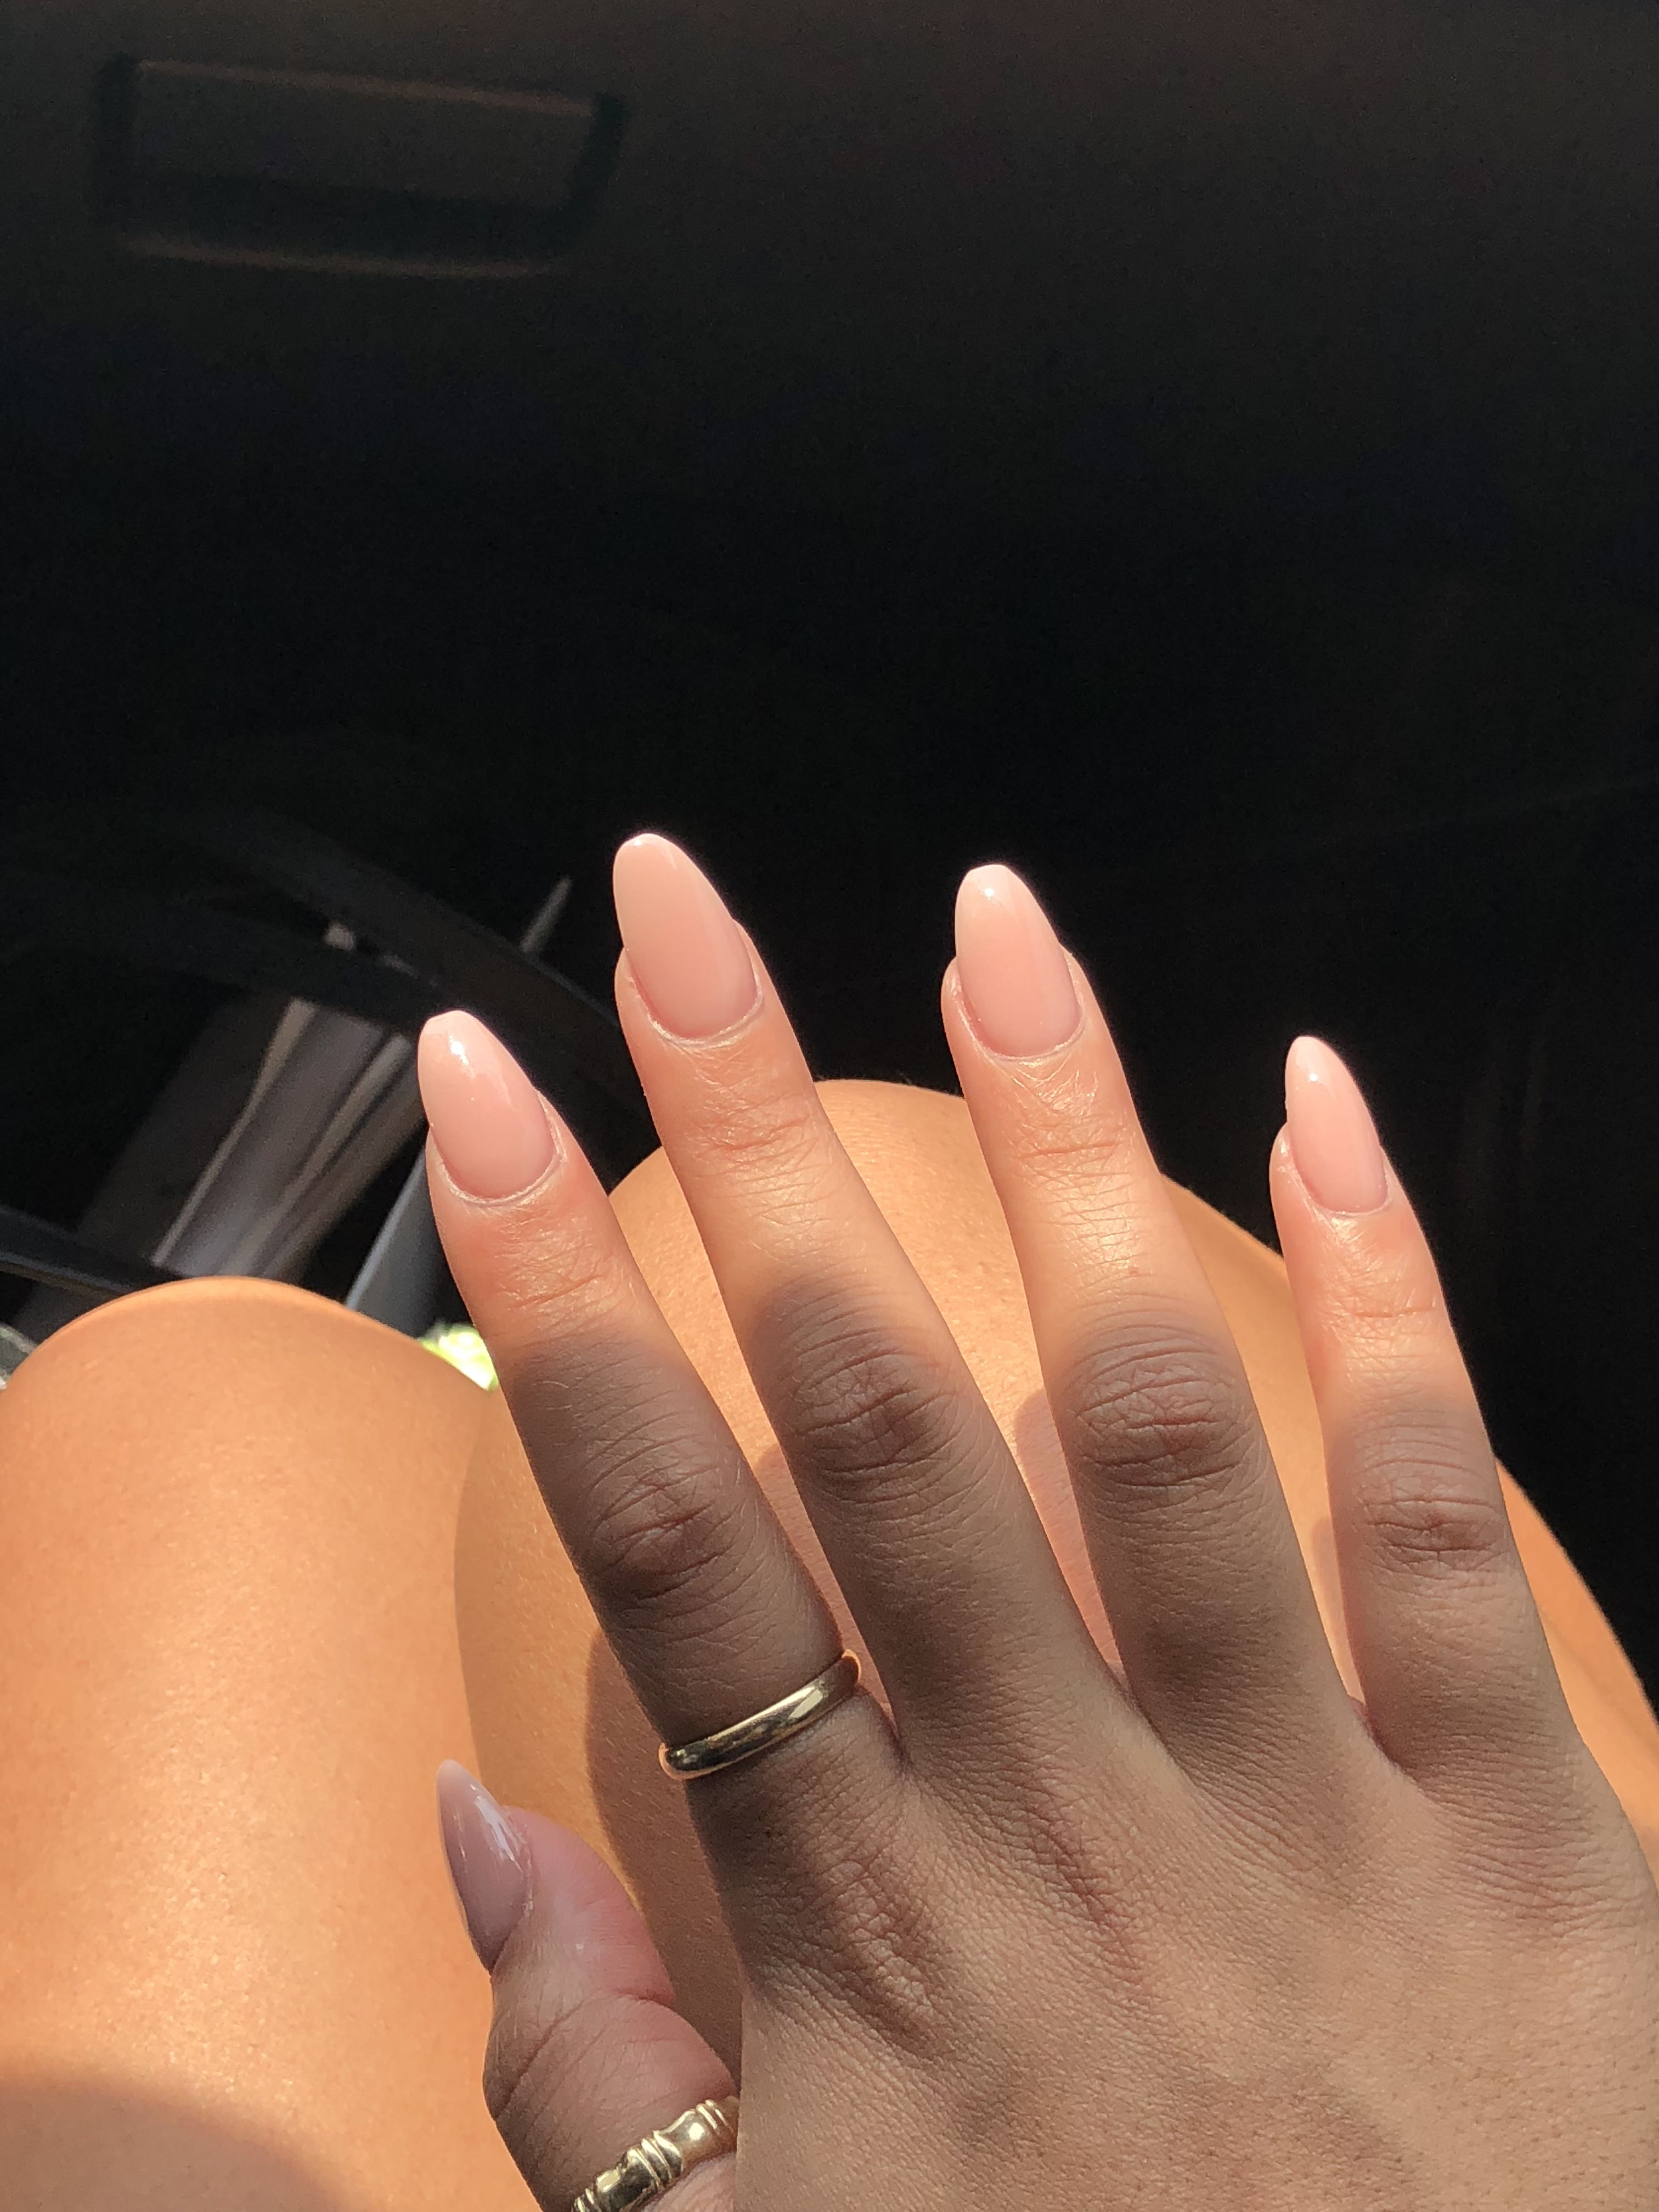 Pin By Cindy On Nails Done Almond Nails Pink Rounded Acrylic Nails Cute Acrylic Nails